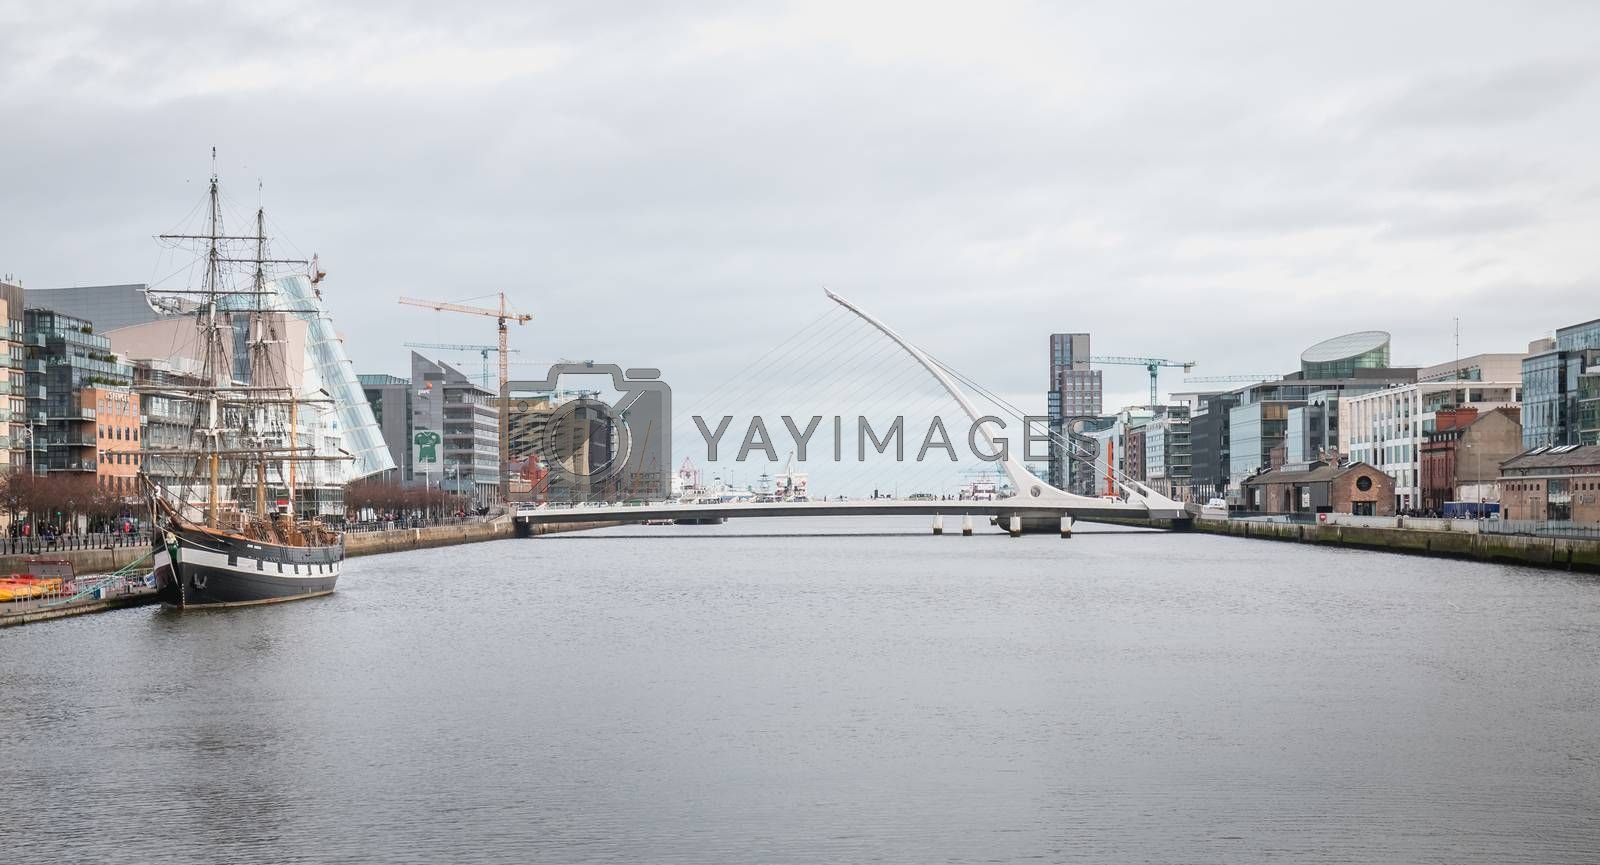 Dublin, Ireland - February 12, 2019: View of the River Liffey in the city center with the replica of the 3-mast sailboat Jeanie Johnston and the Samuel Beckett bridge on a winter day